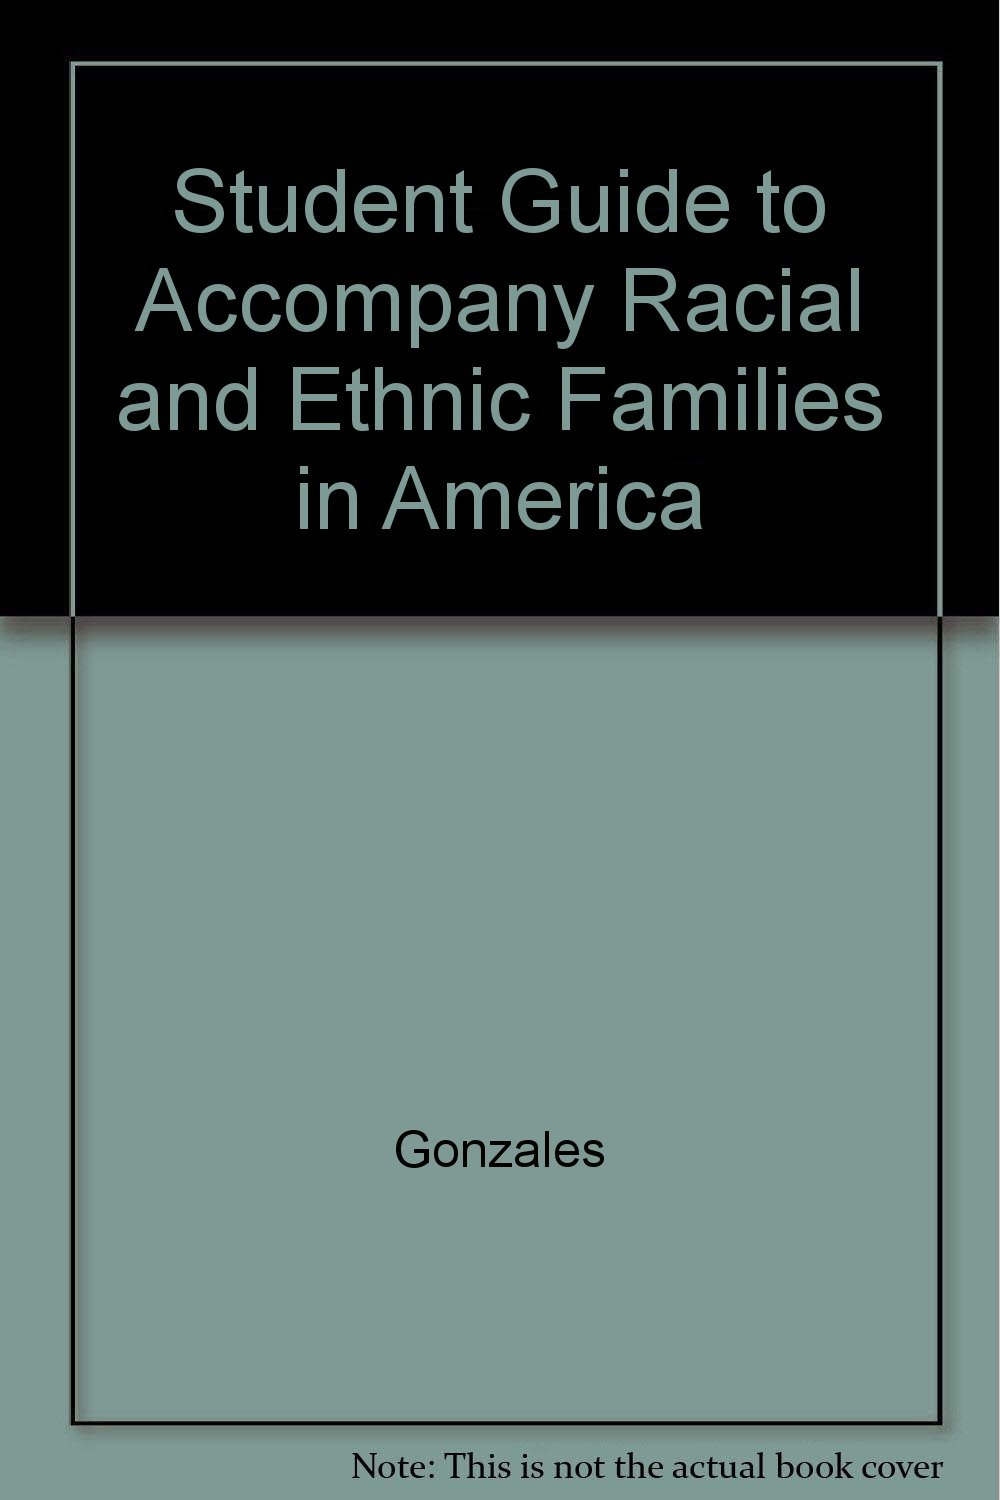 Student Guide to Accompany Racial and Ethnic Families in America:  9780840394903: Amazon.com: Books